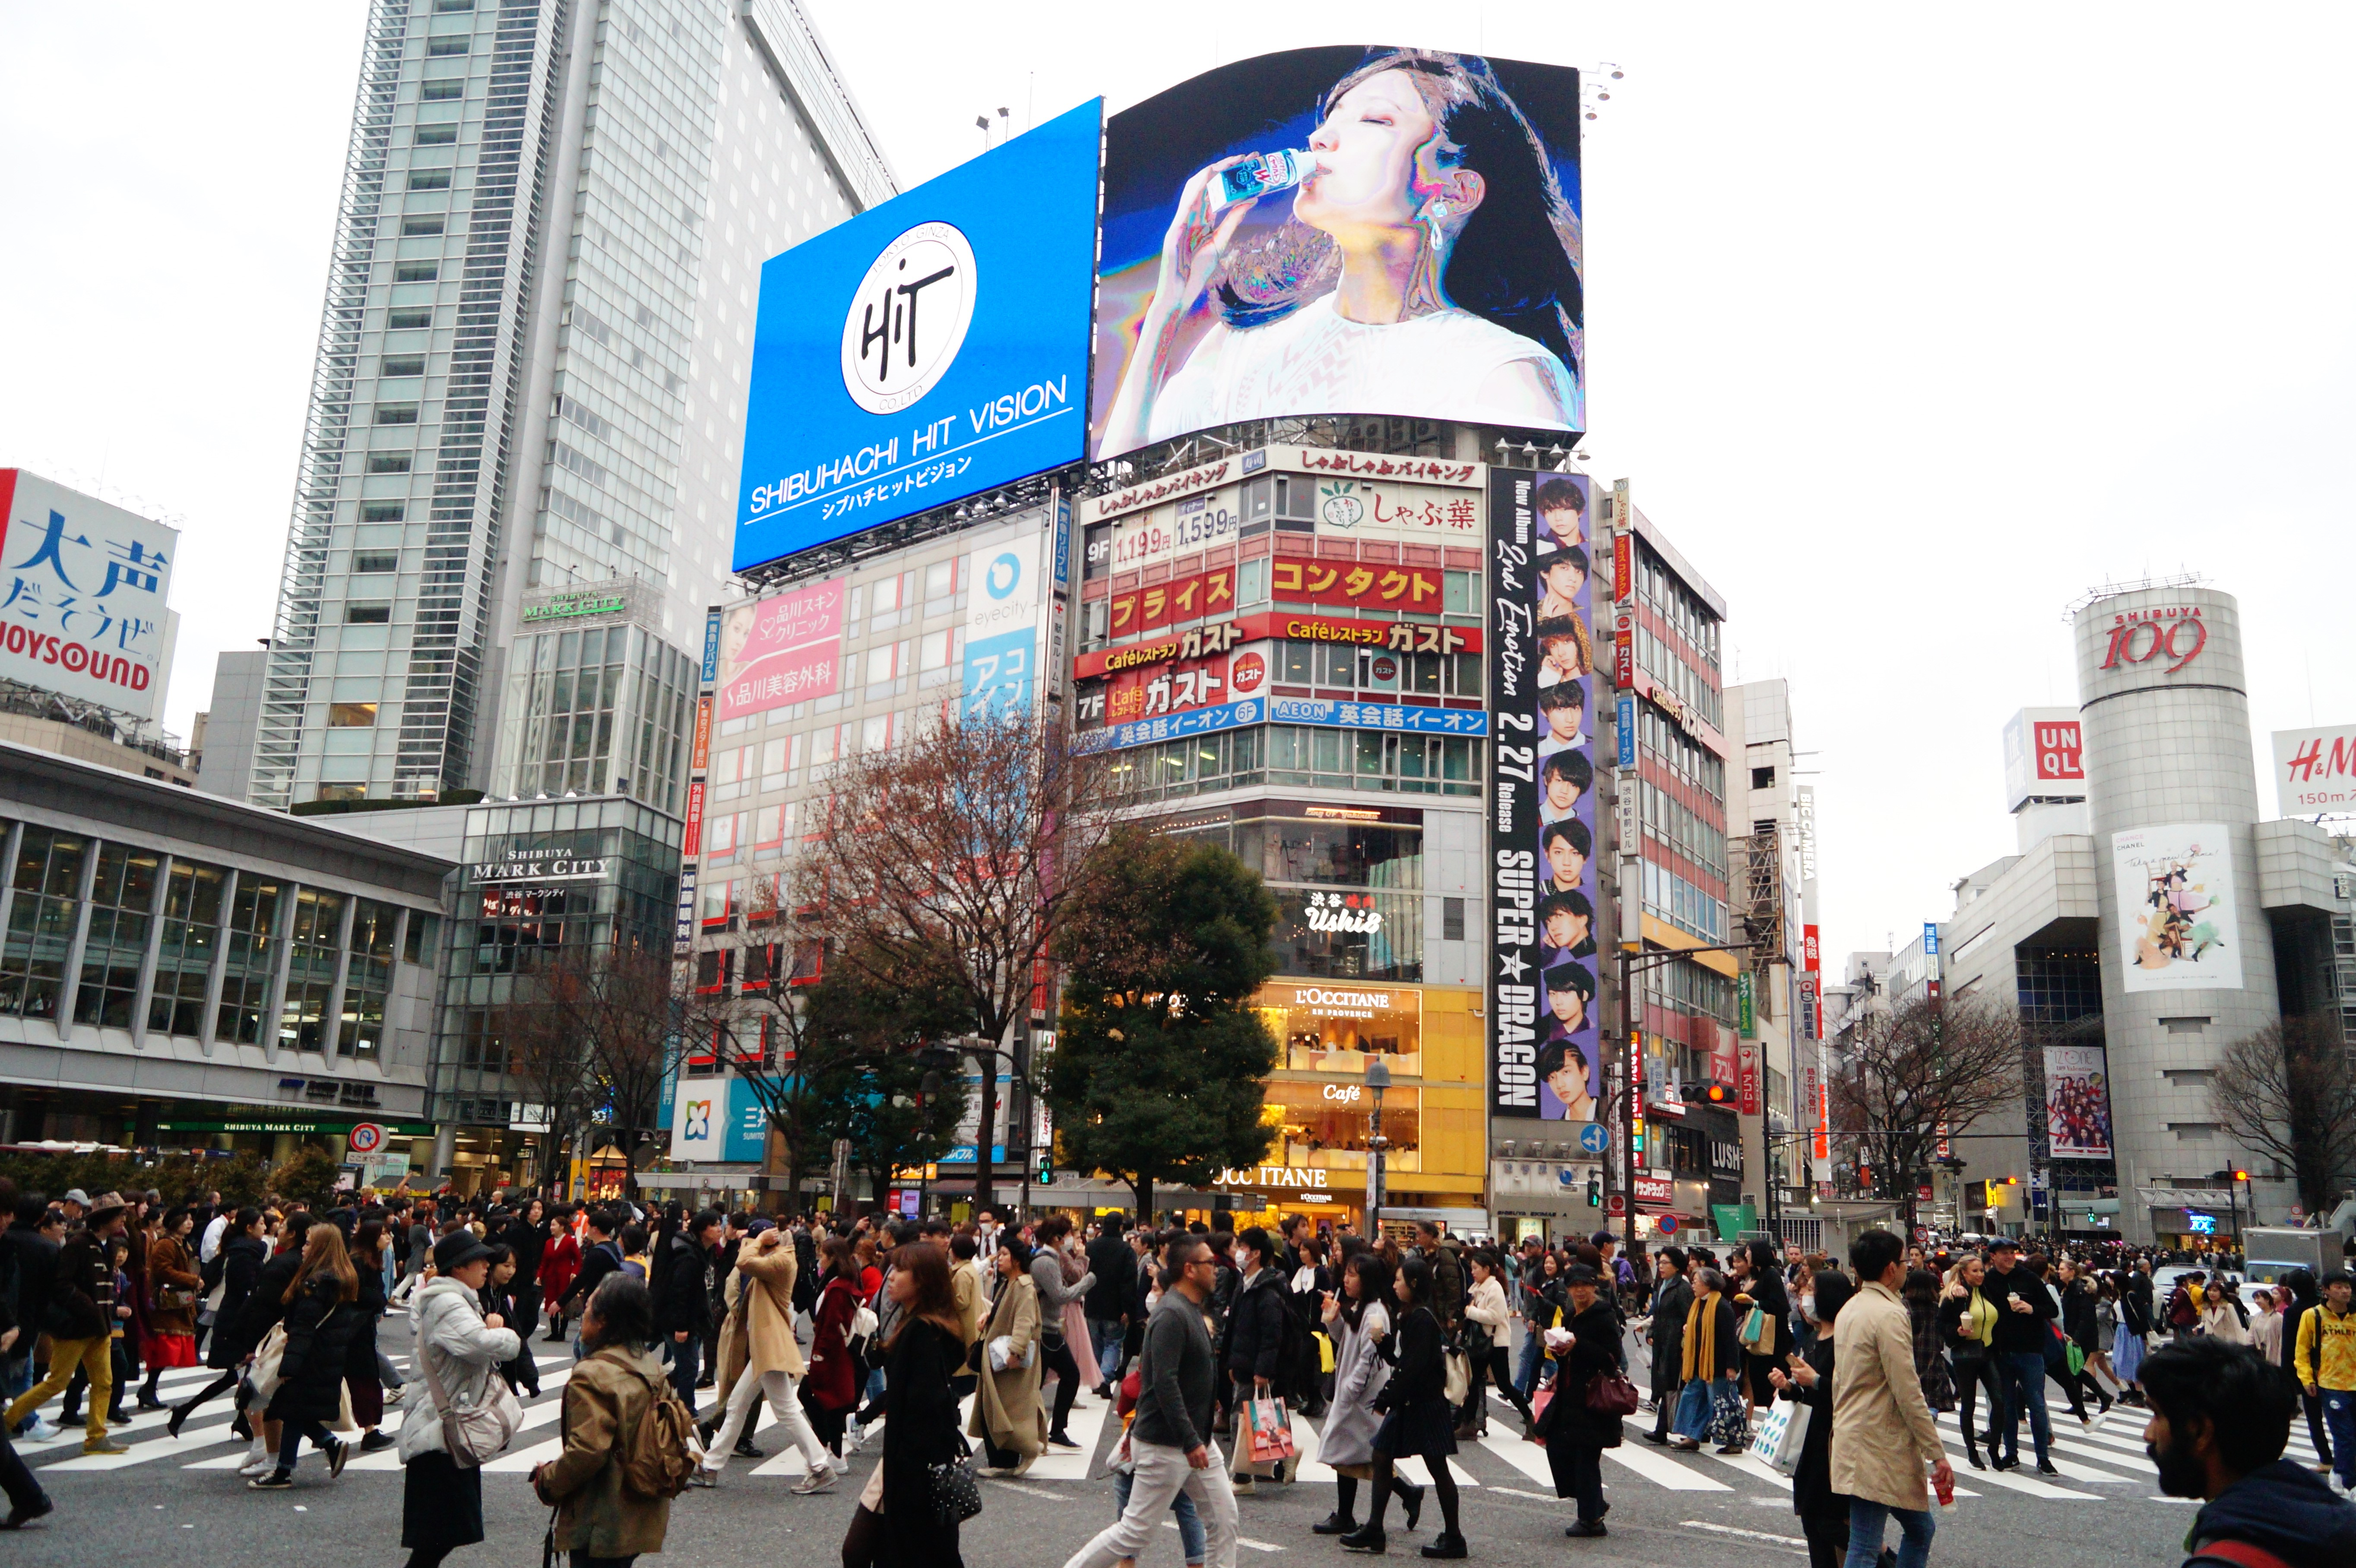 Tokyo Cruce de Shibuya 01 - Tokyo in 4 days: 5 must-see places